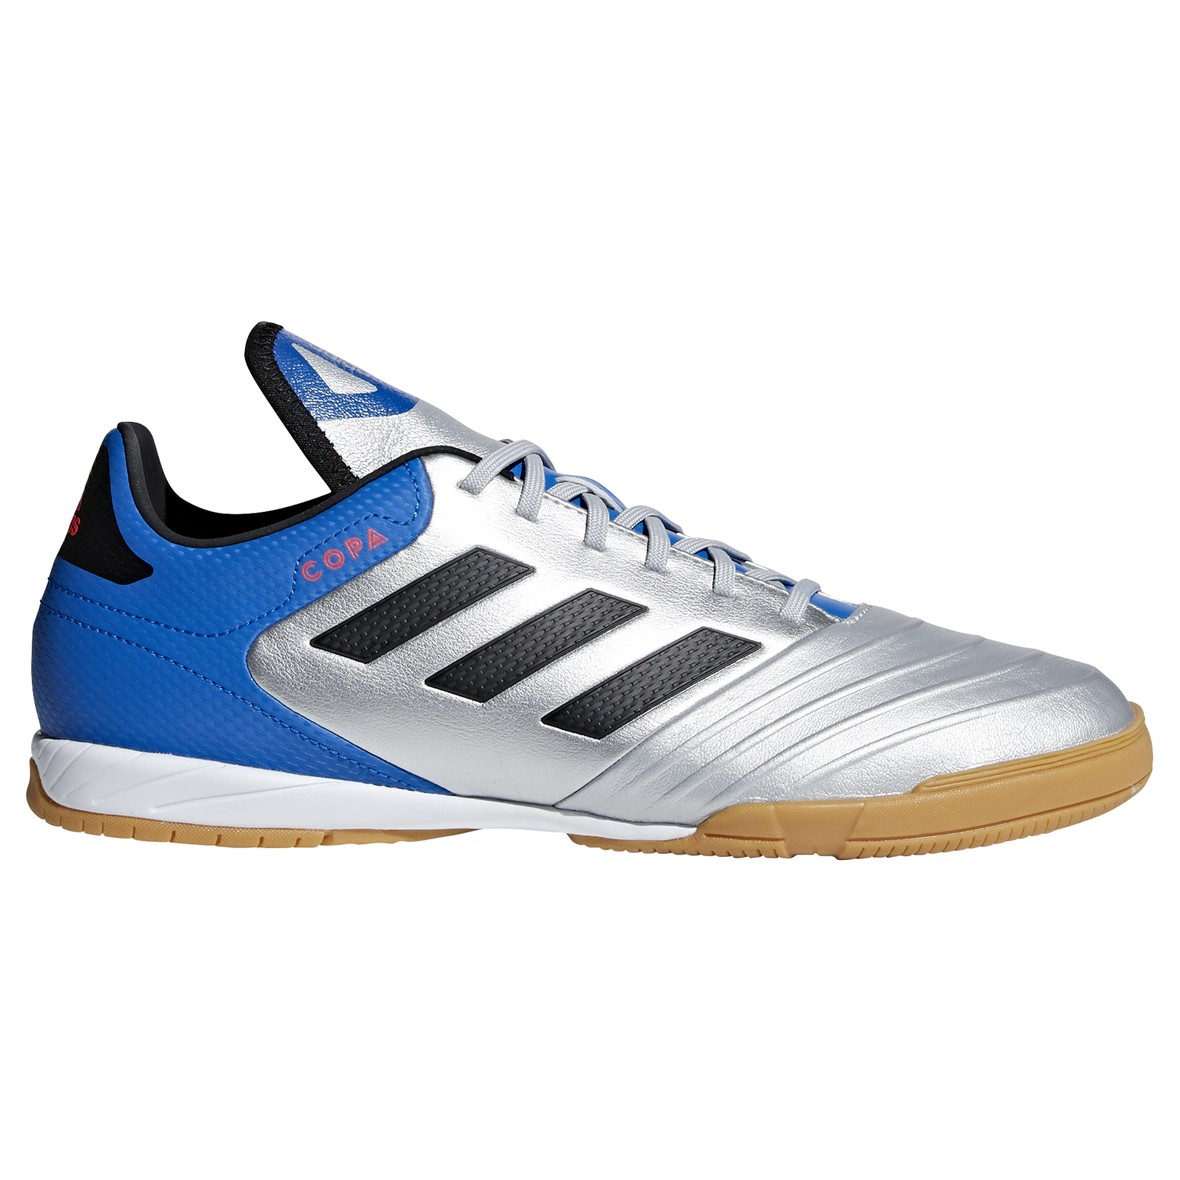 sale retailer 3ce4e 18239 Adidas Copa Tango 18.3 IN - Mens Futsal Indoor Soccer Shoes - Silver Core